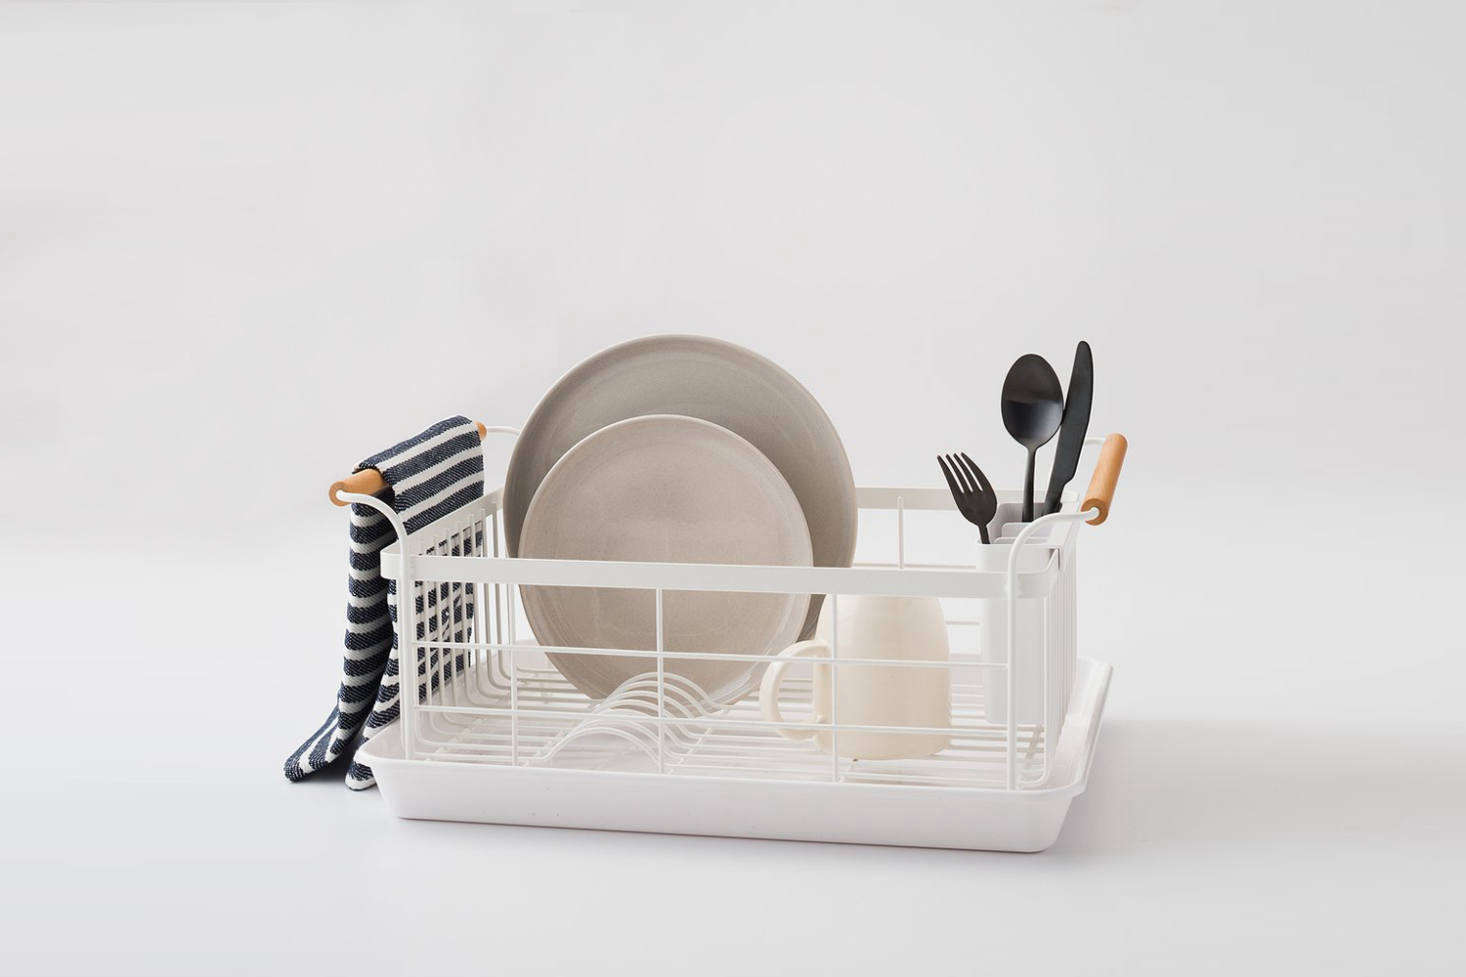 The Yamazaki Wood Handled Dish Drainer is made of powder coated steel and walnut handles; $68 at Schoolhouse. For more on Yamazaki see Genius Low-Cost Storage Solutions from Japan.